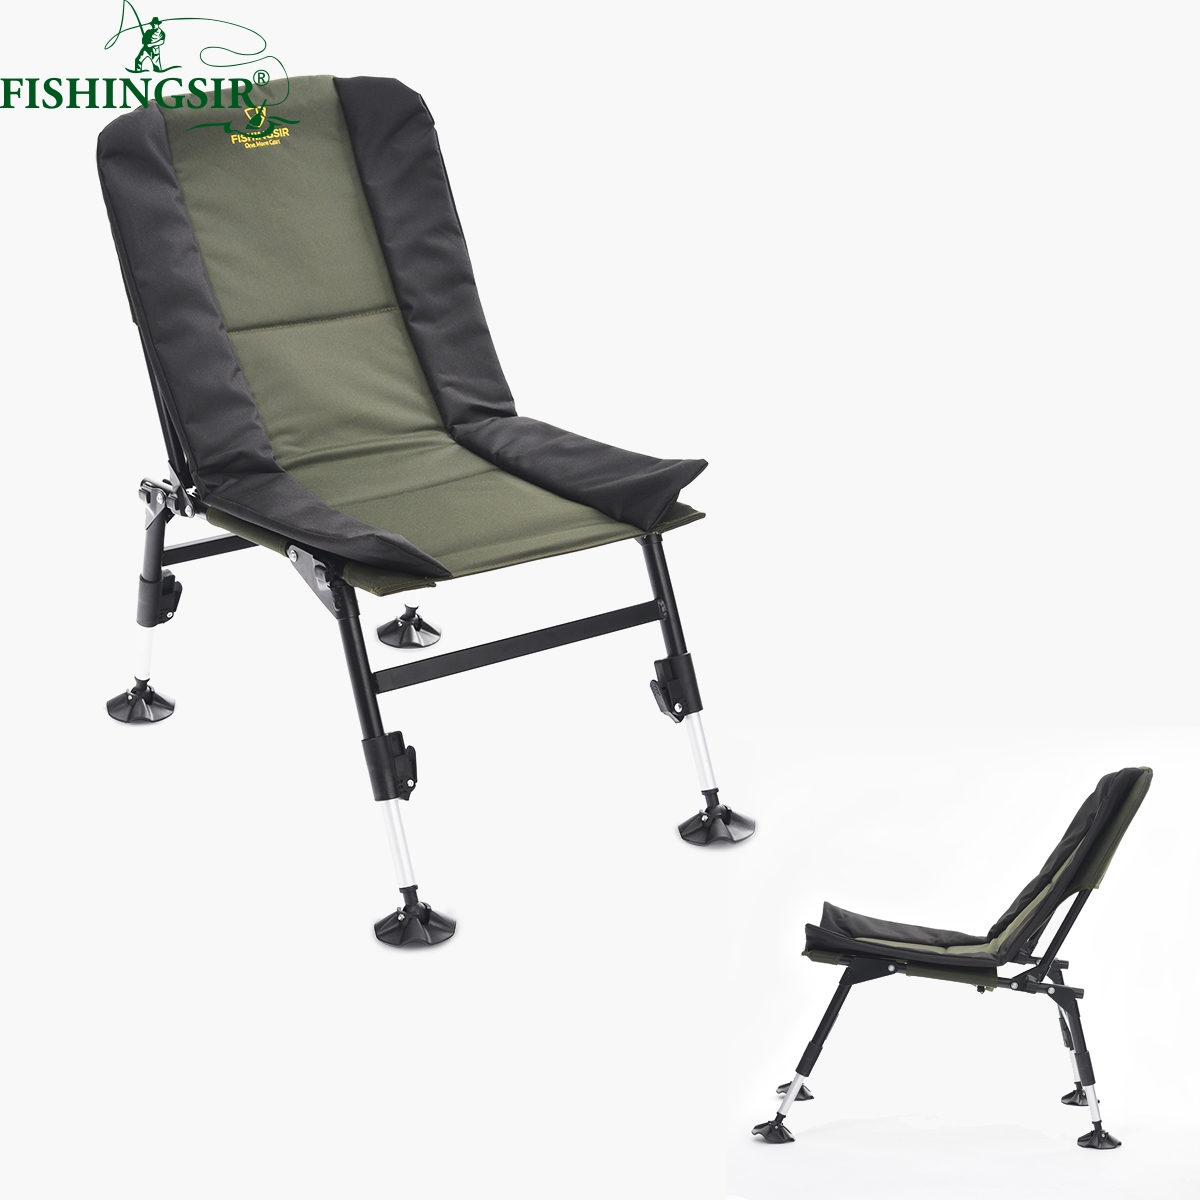 Fishing Chair With Adjustable Legs Armless Task Outdoor Portable Ultimate Breathable Folding Picnic Camping Chairs W Multifunctional Tackle